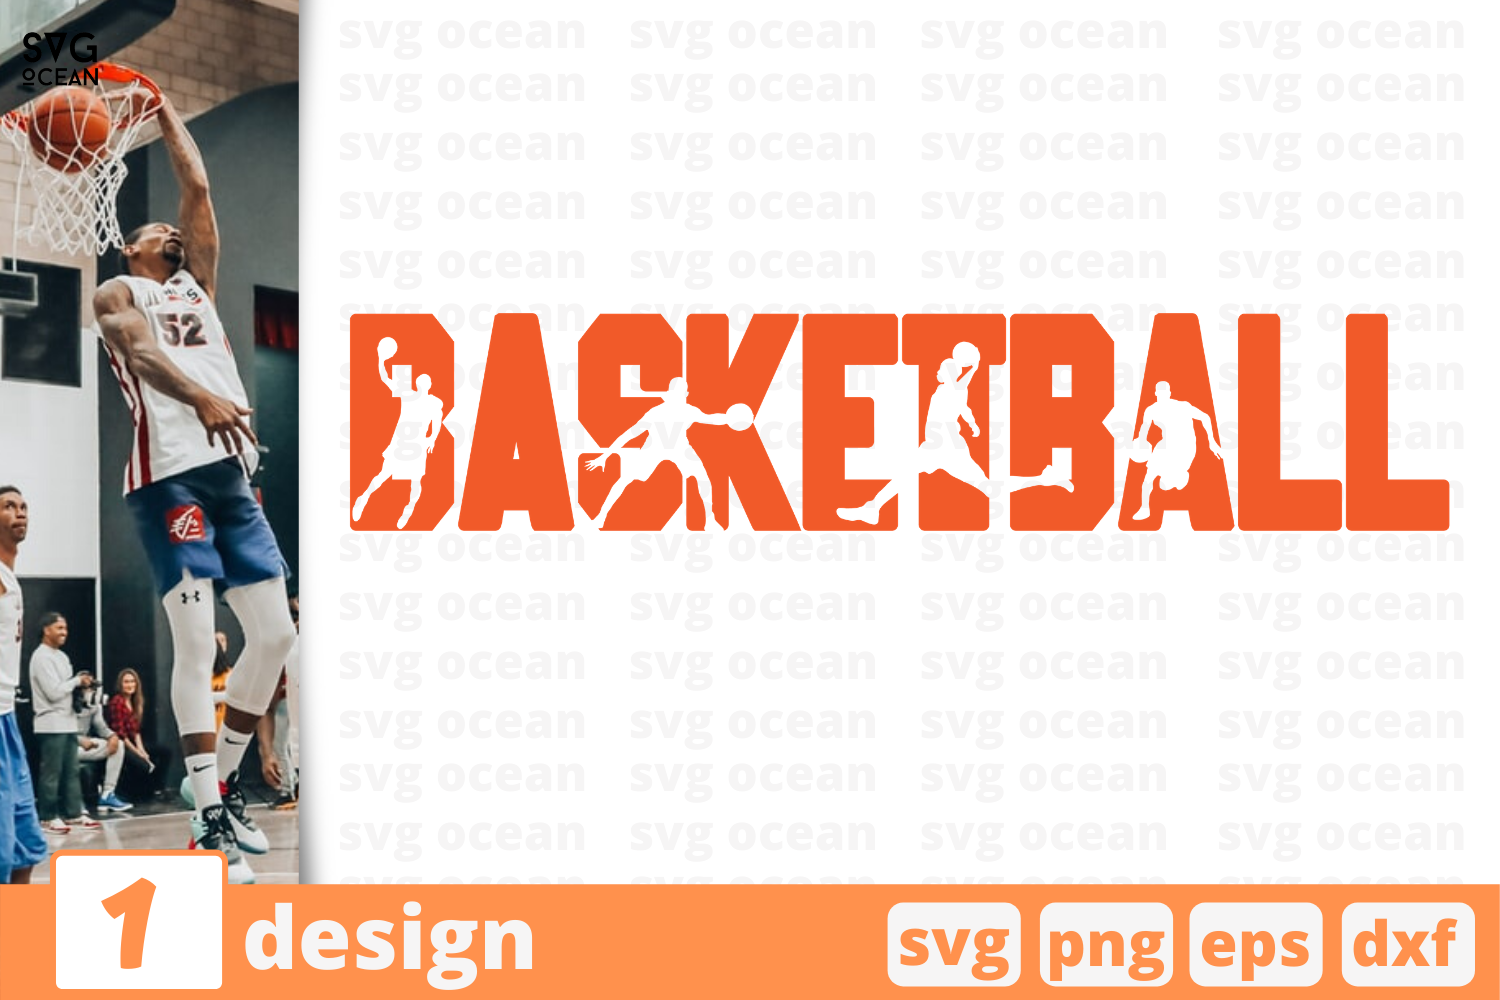 Download Free Basketball Graphic By Svgocean Creative Fabrica for Cricut Explore, Silhouette and other cutting machines.